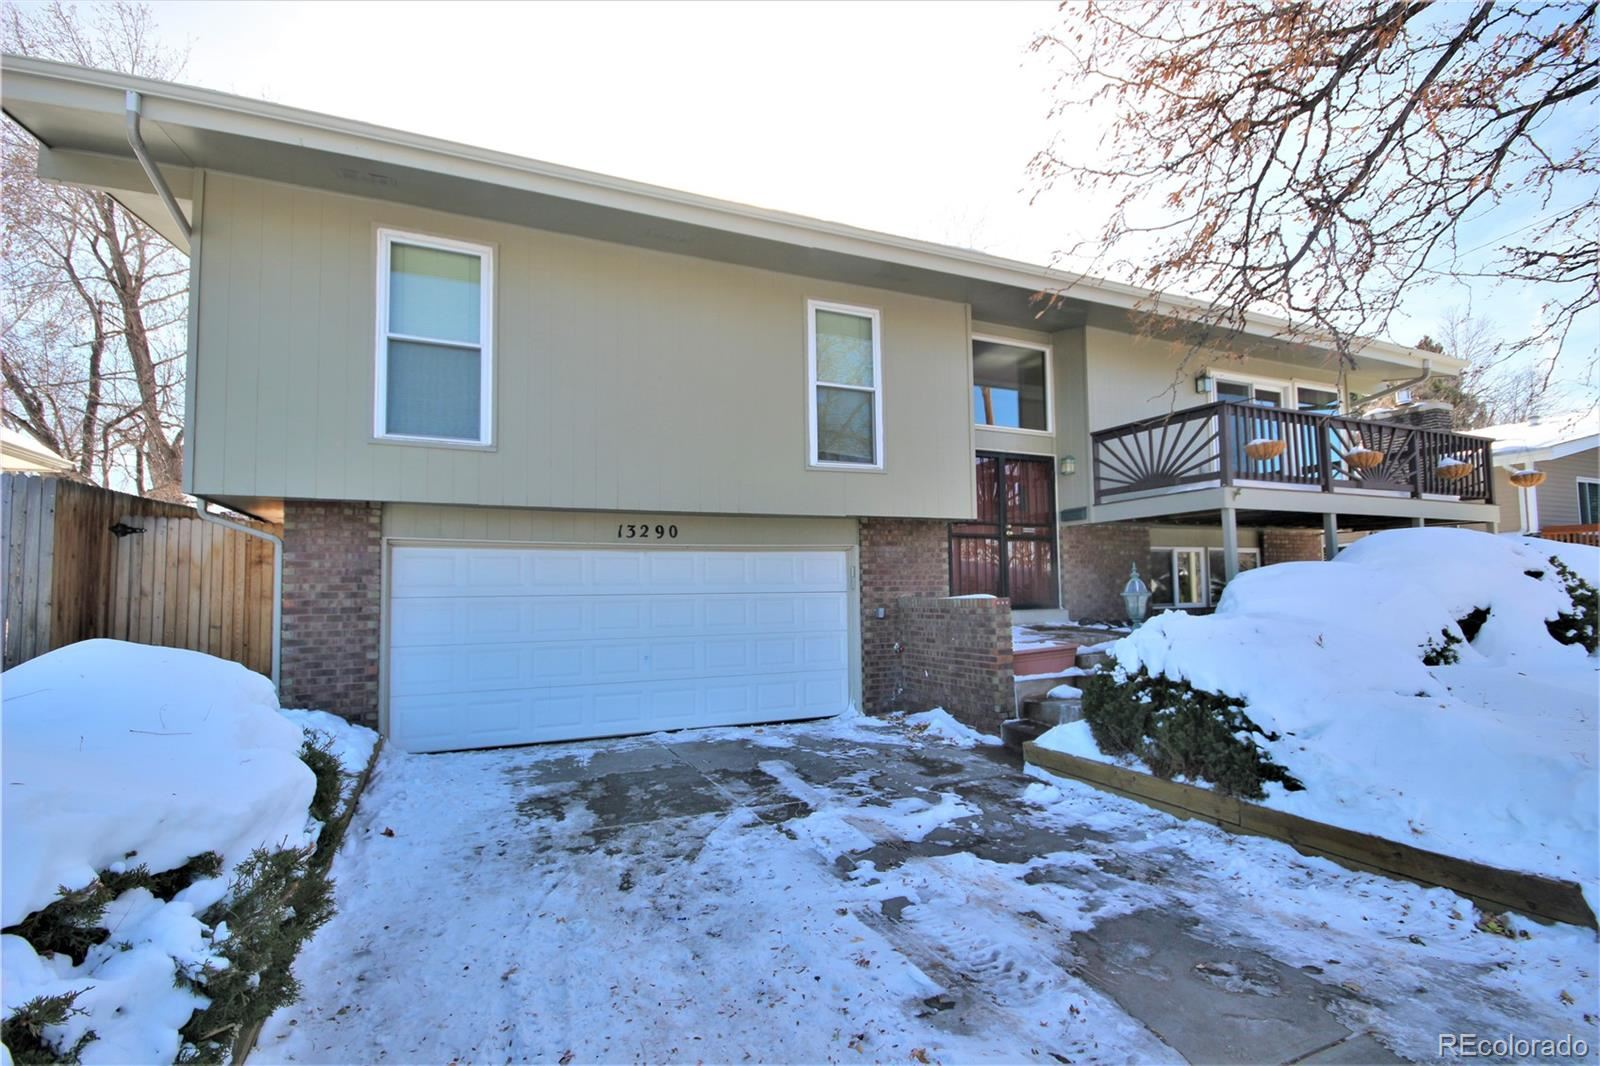 13290 West Dakota Place, Lakewood, CO 80228 - MLS#: 5906182